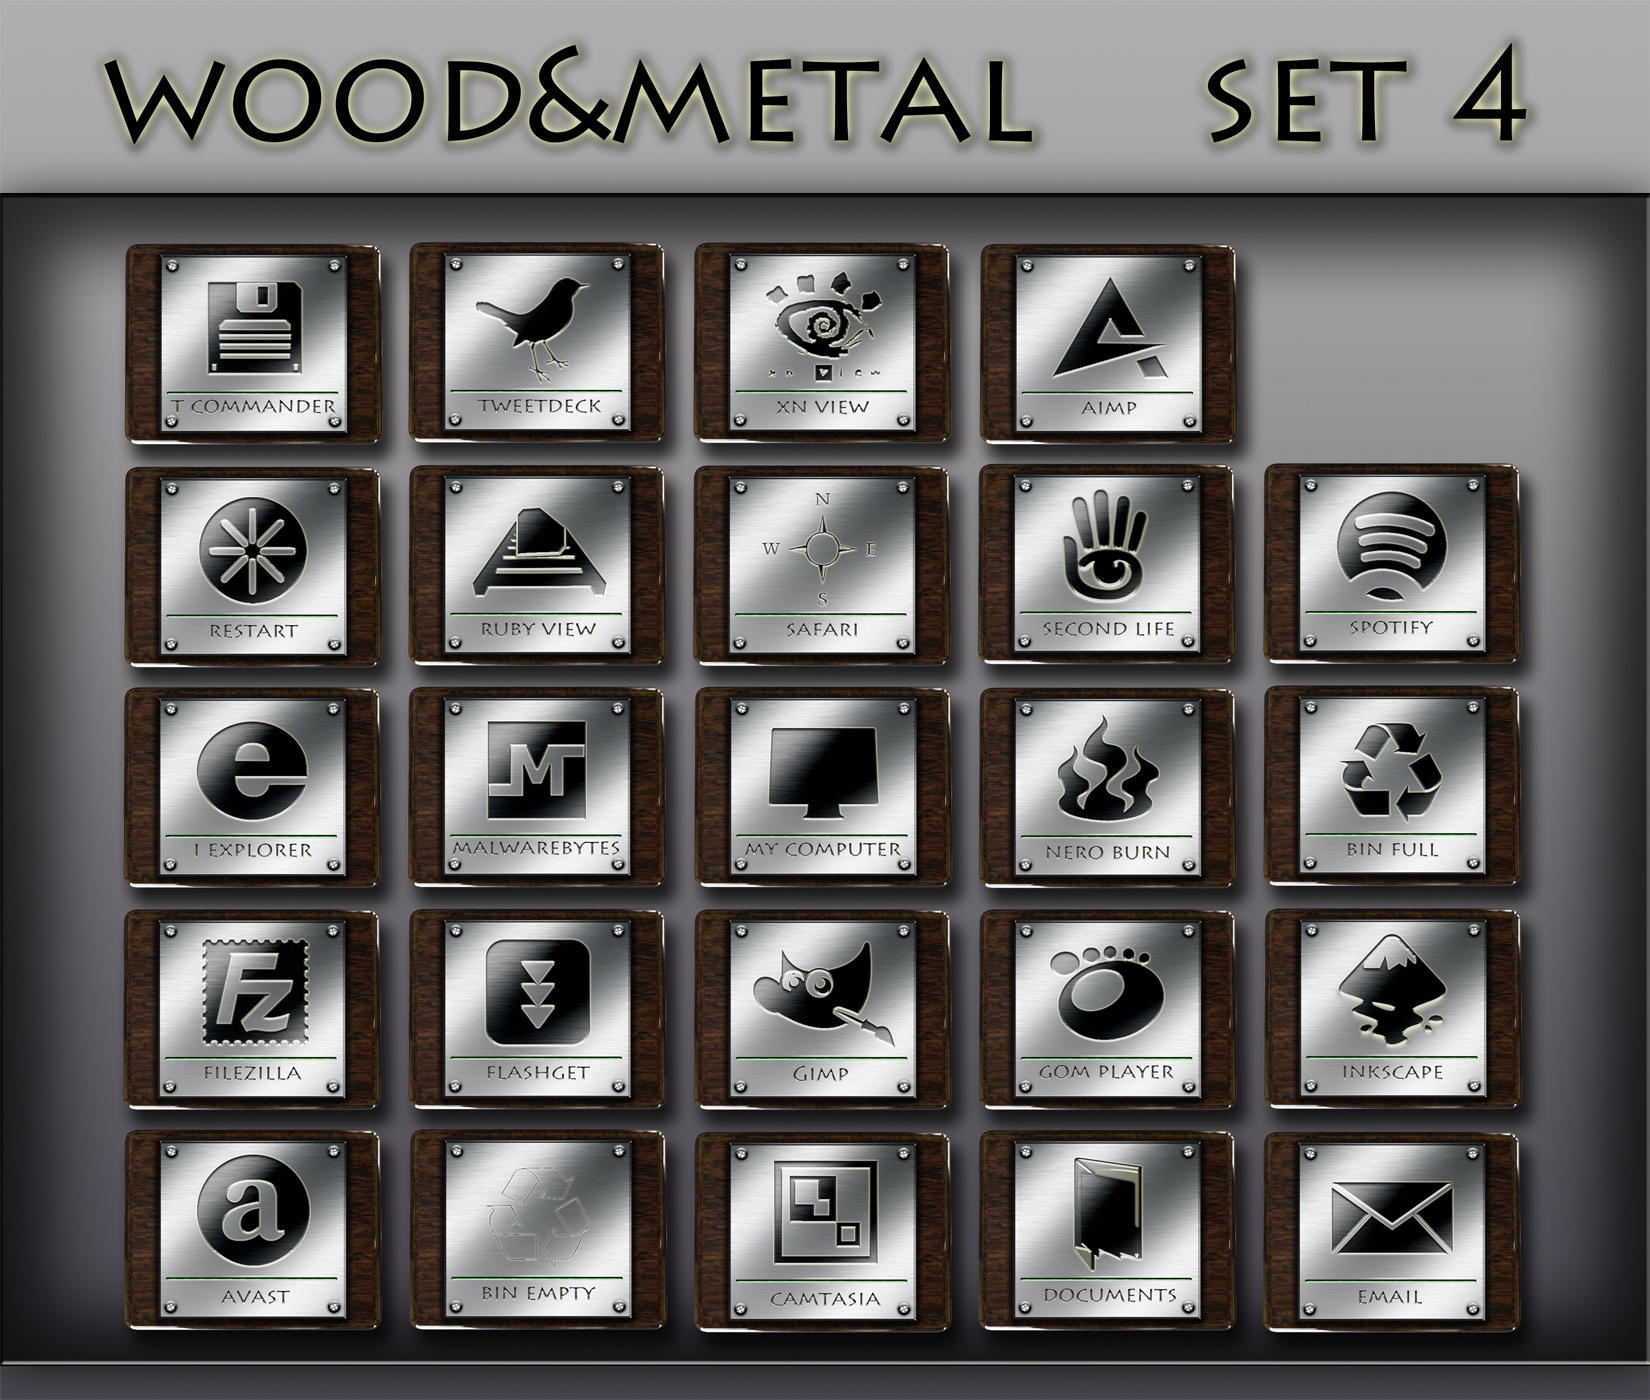 wood and metal   set 4 by xylomon